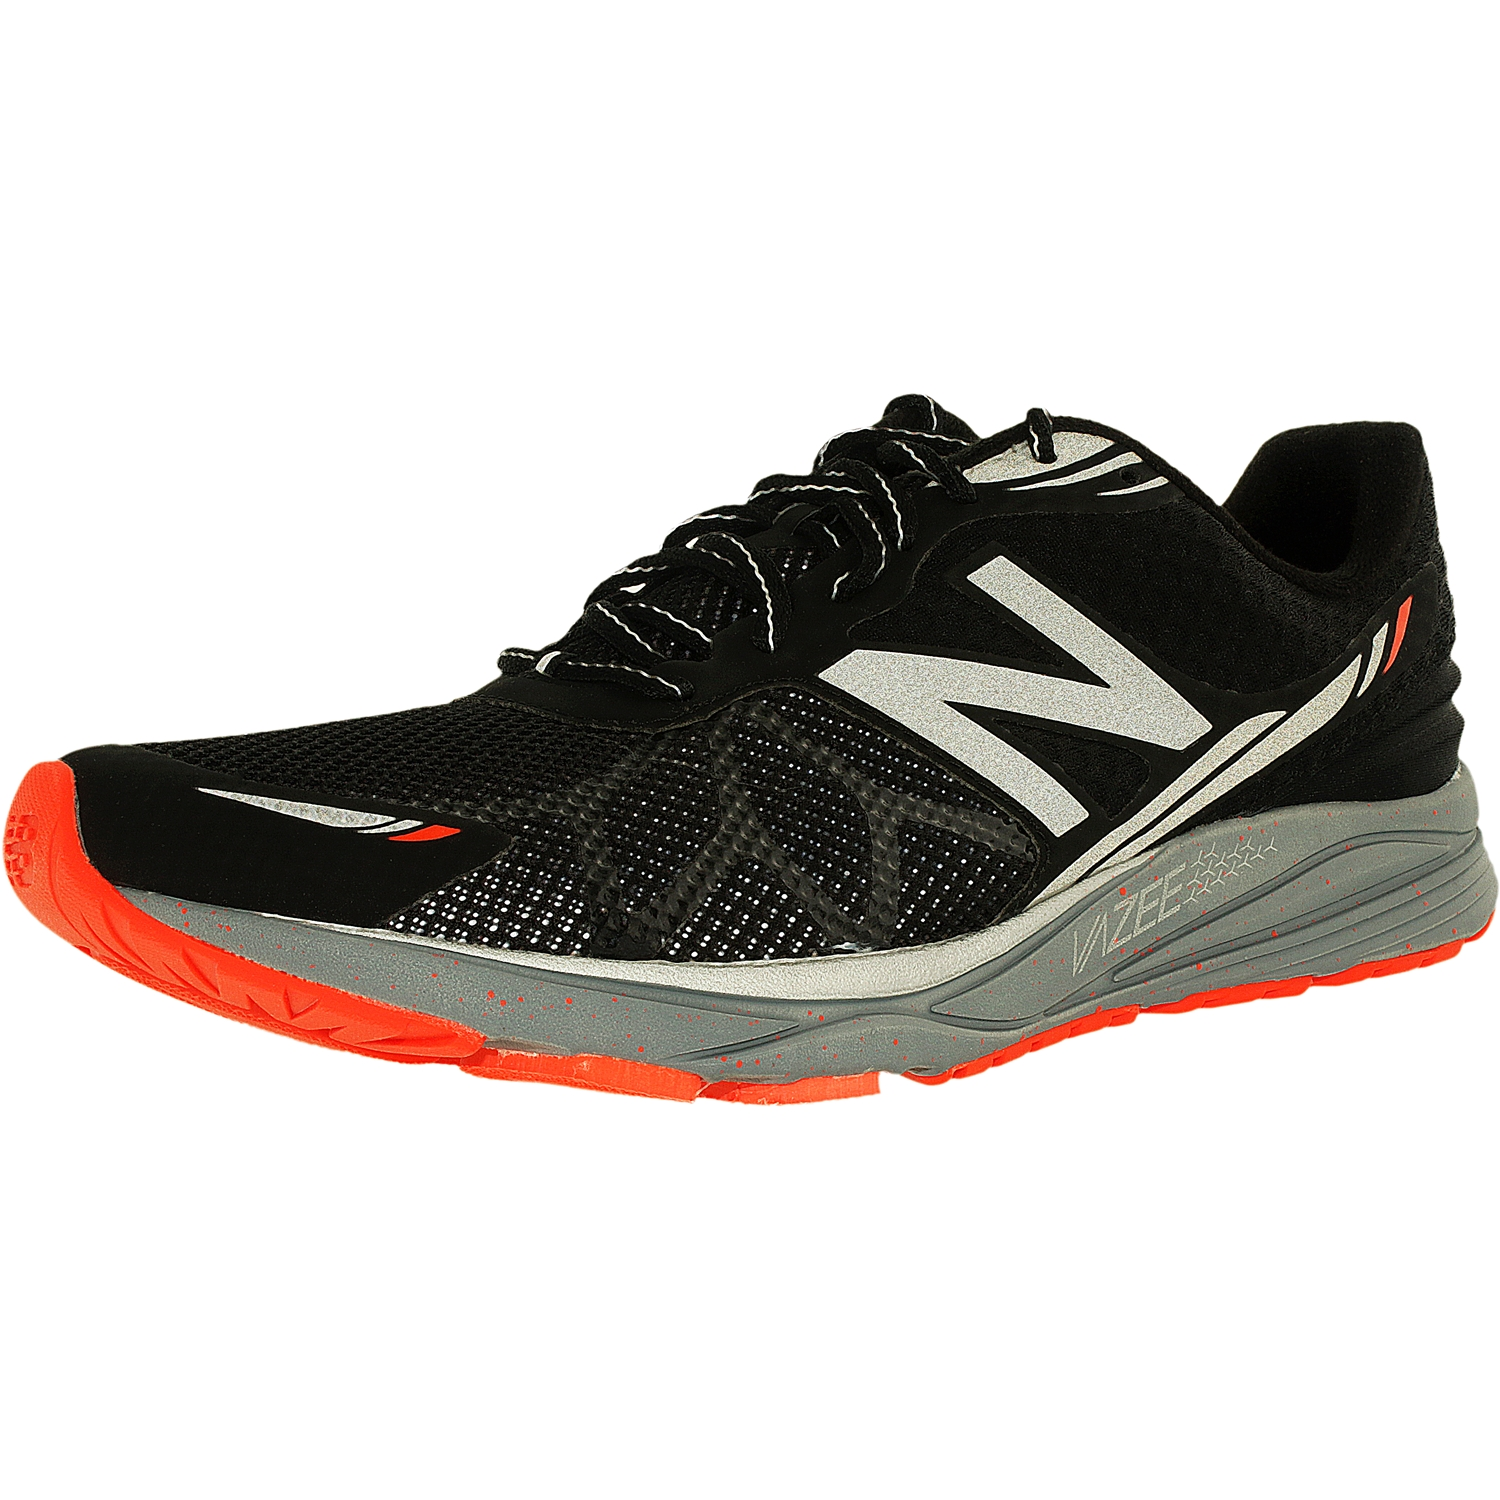 New Balance Men's Running Course Black Silver Electric Green Low Top Mesh Shoe 9.5M by New Balance